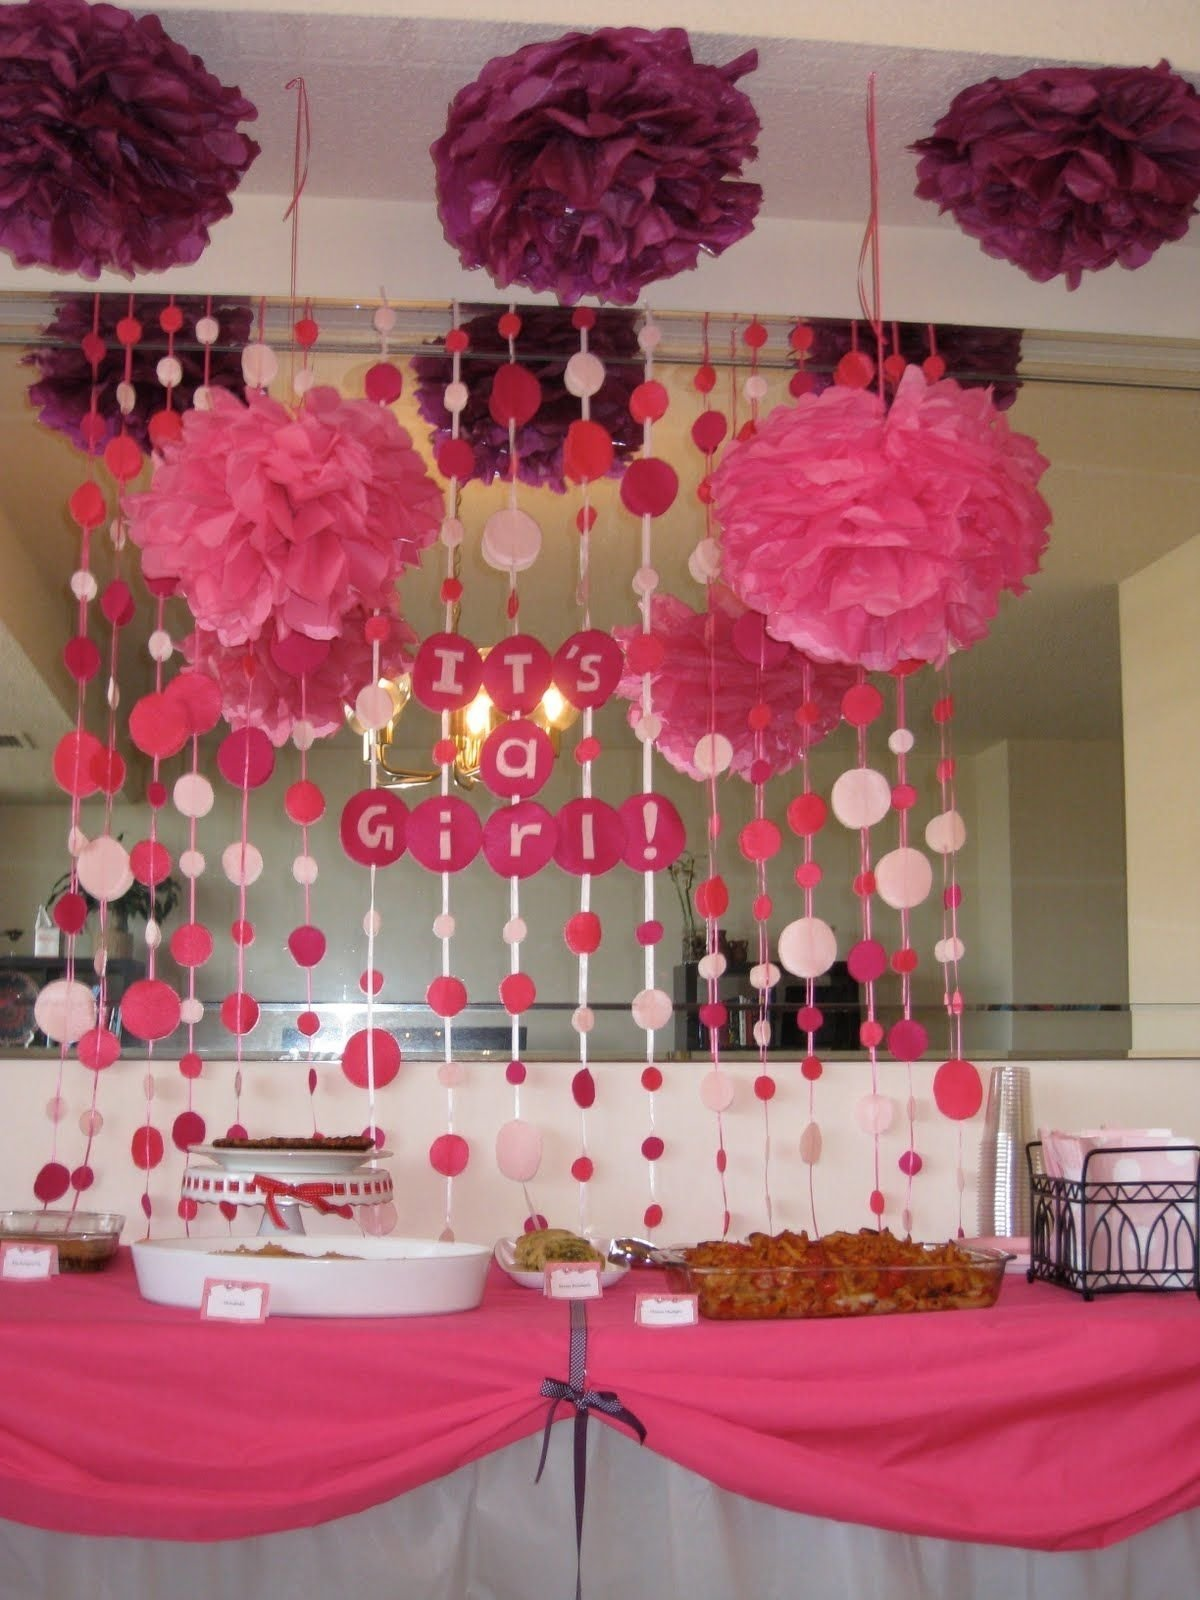 10 Fabulous Decorations For Baby Shower Ideas baby shower centerpiece ideas baby girl shower ideas wedding 5 2021